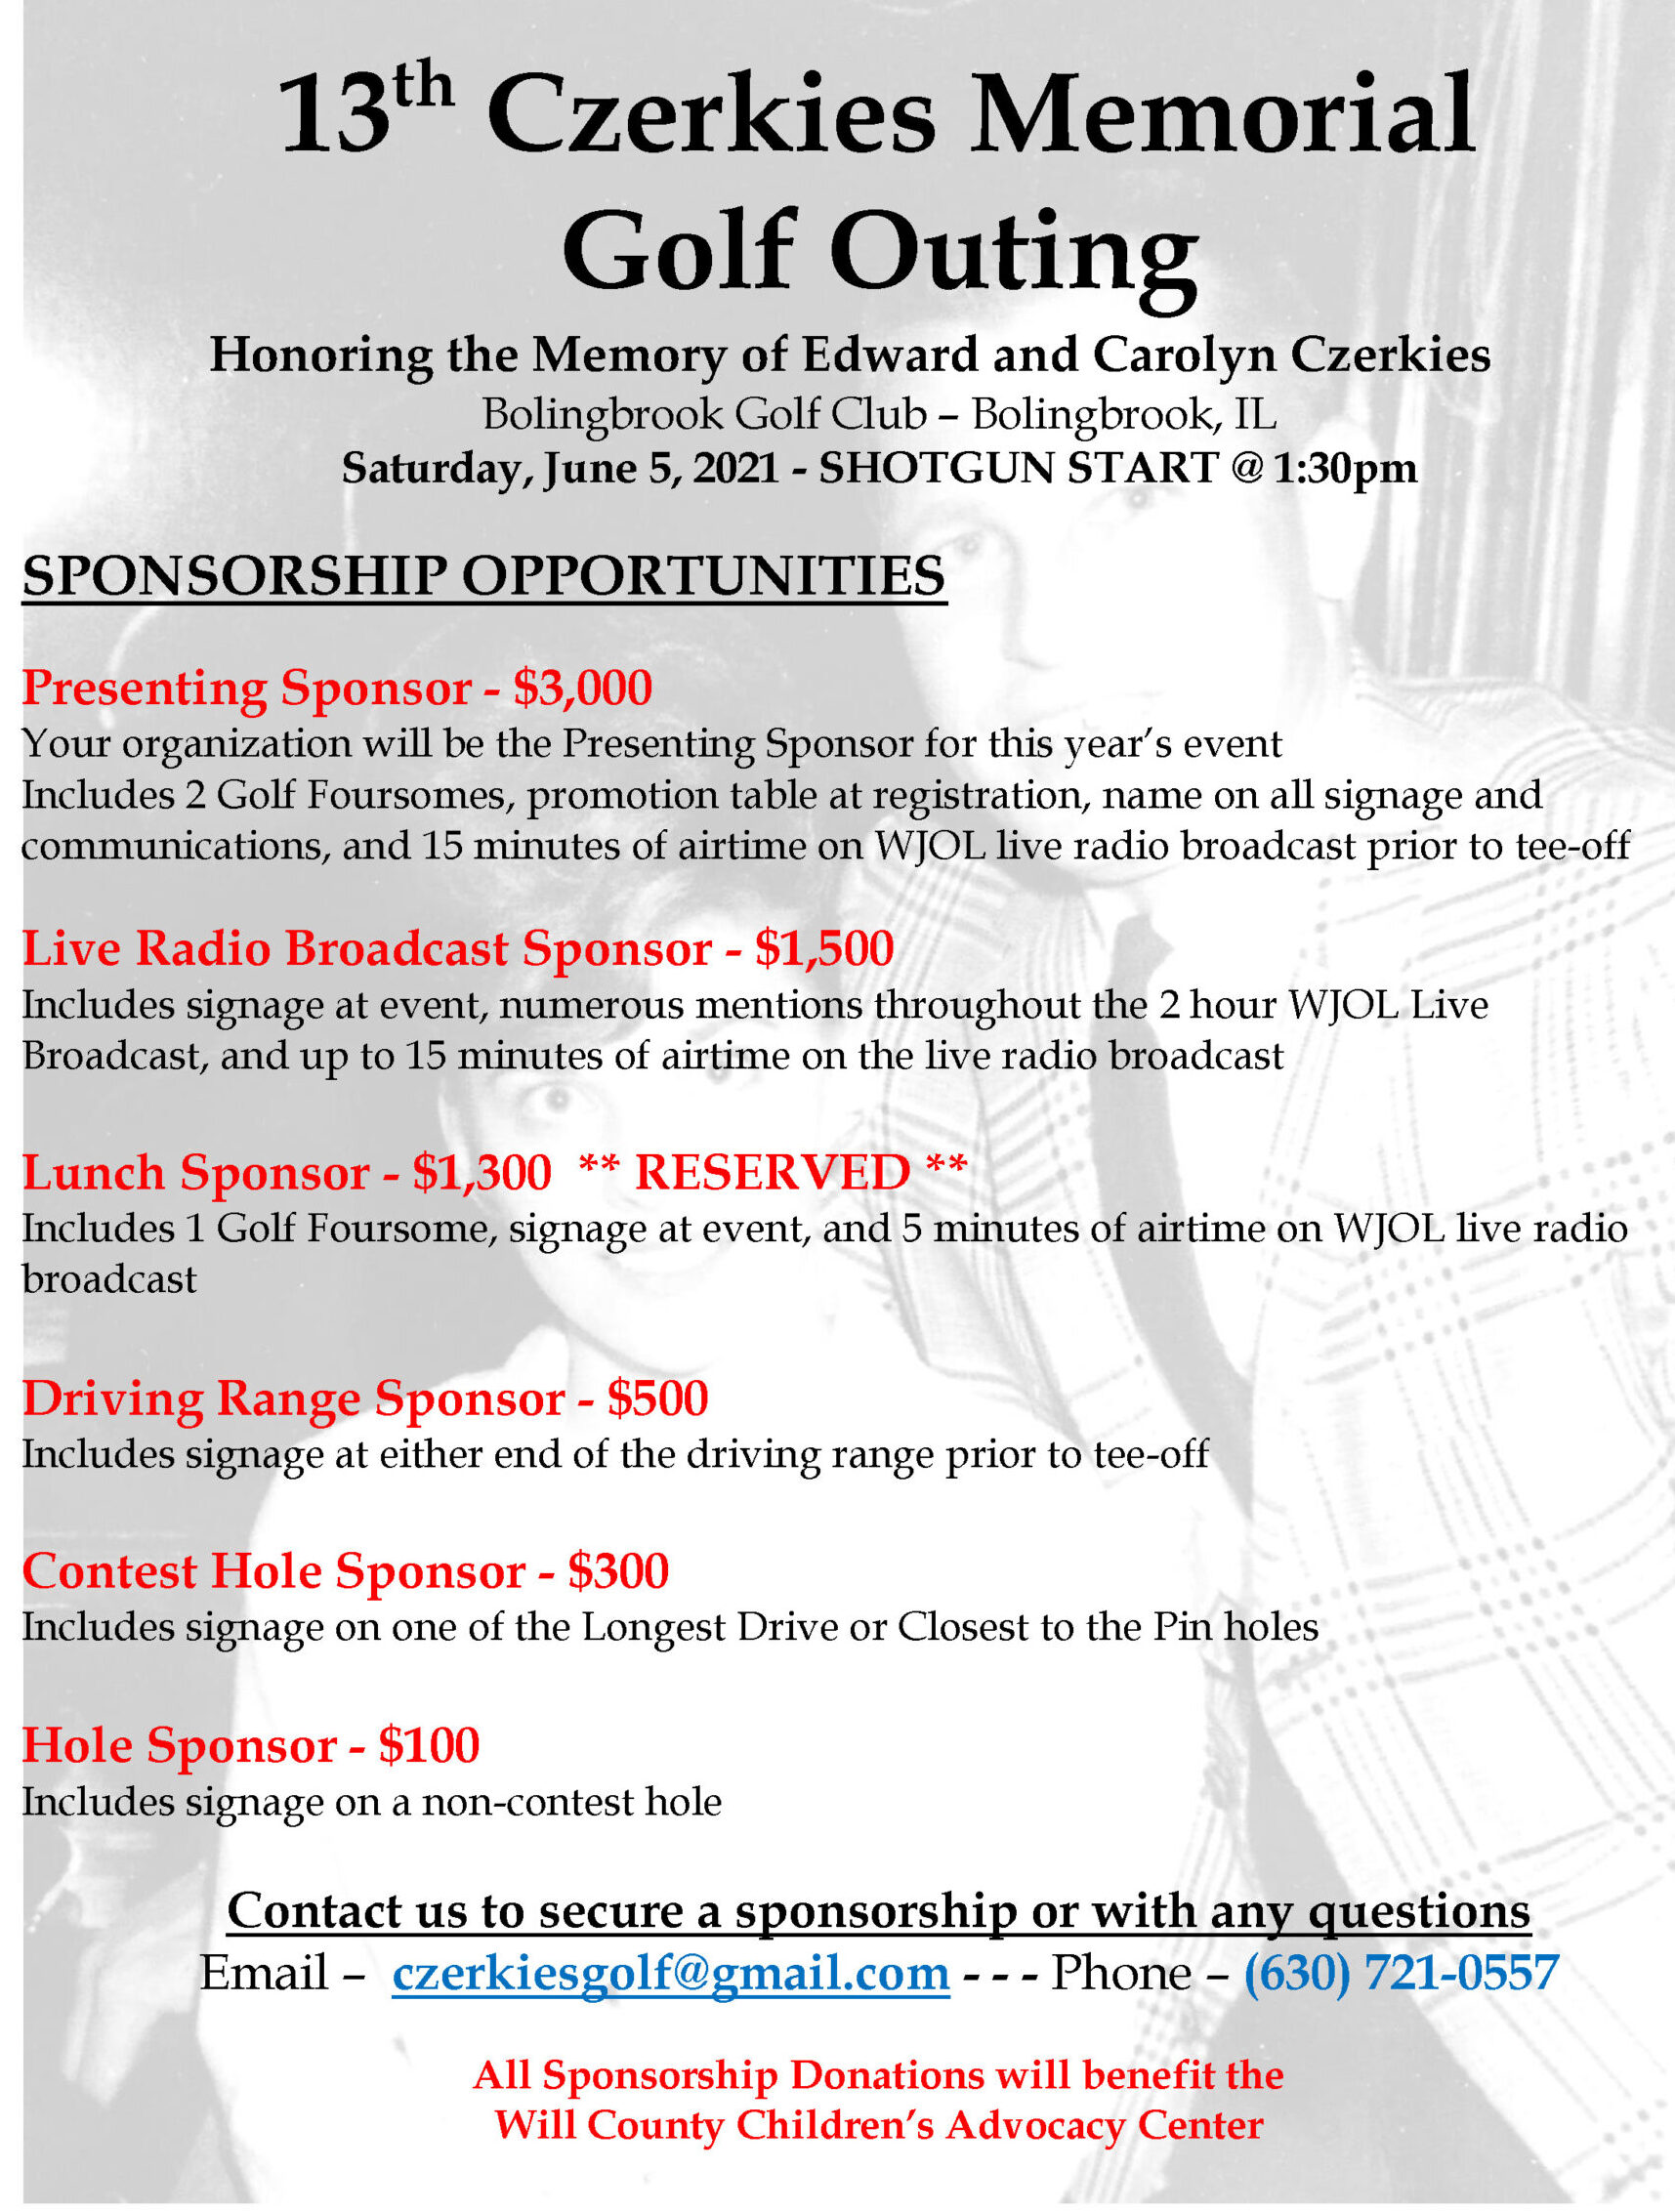 Sponsorship Opportunities - 2021 Czerkies Memorial Golf Outing